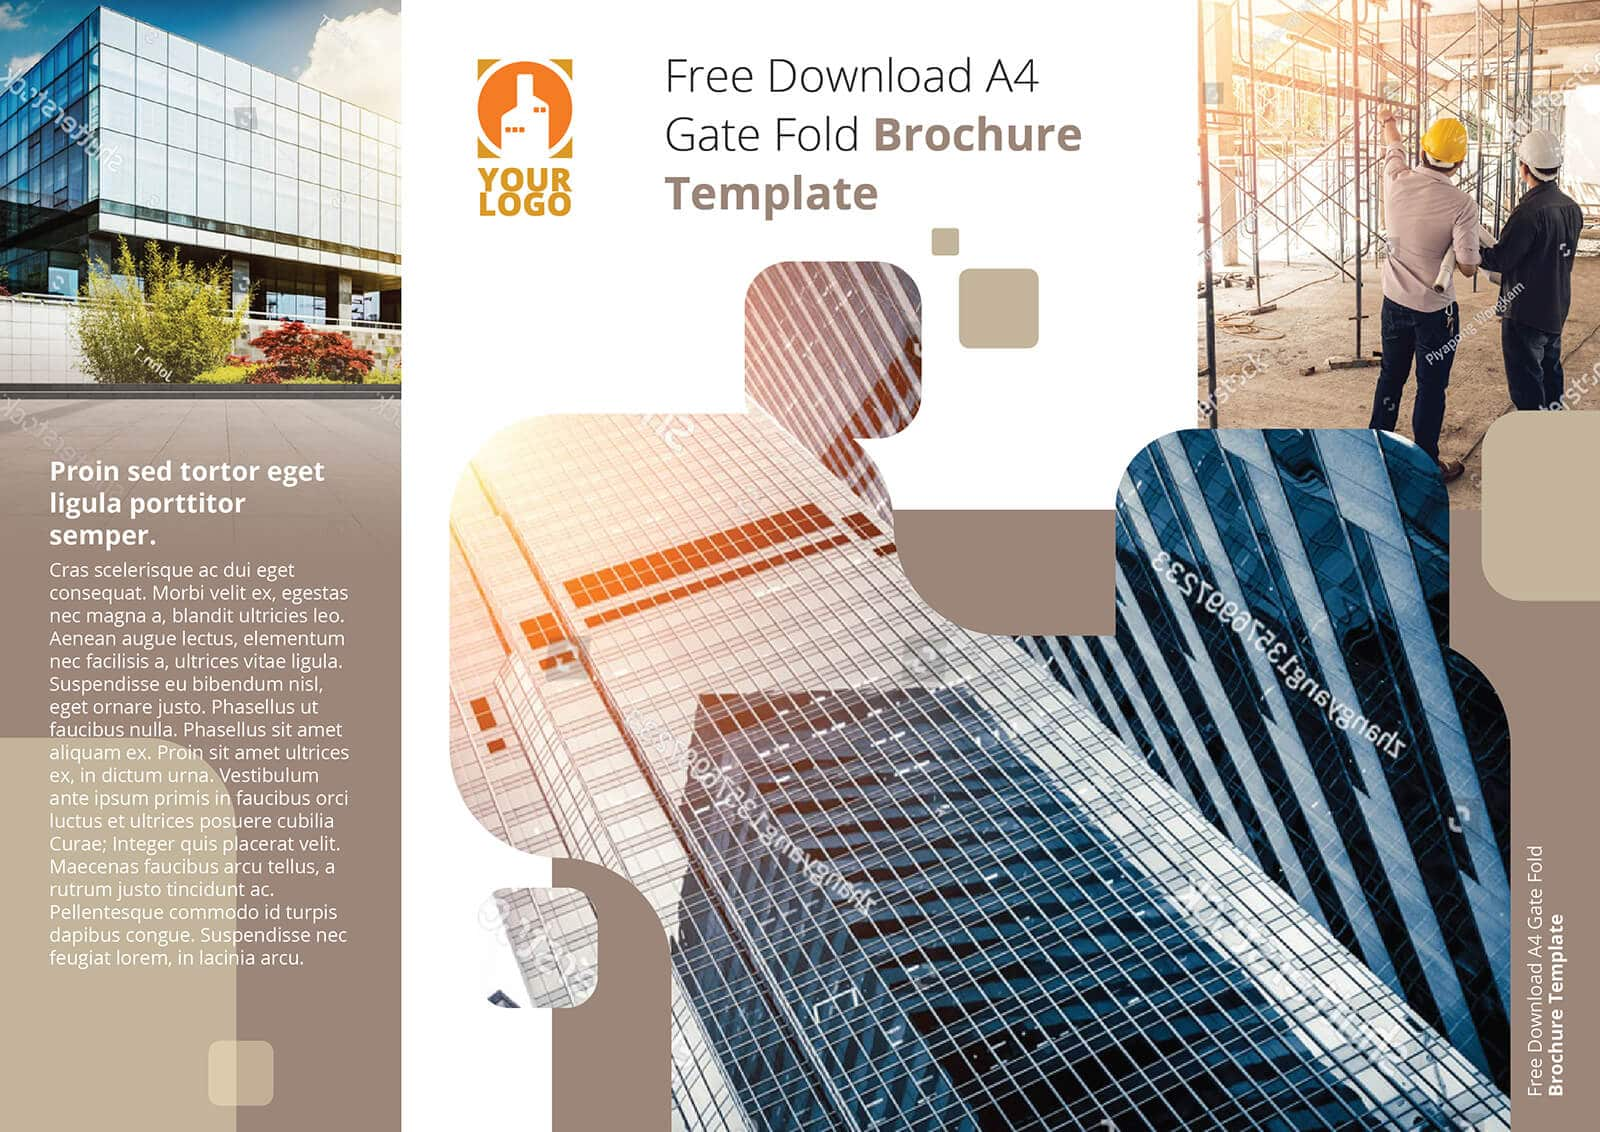 Free Download A4 Gate Fold Brochure Template Plain 01